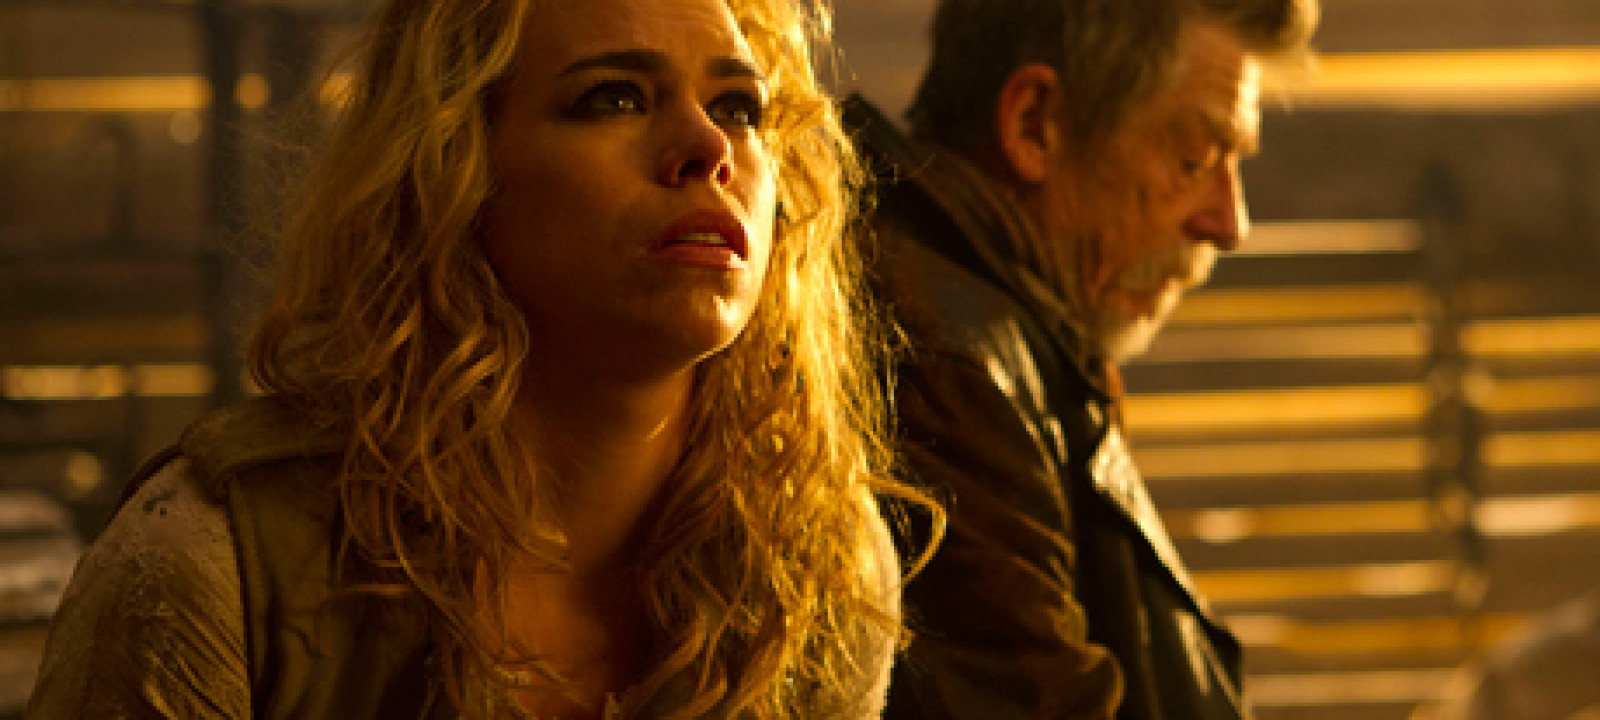 460x300_billiepiper_dayofthedoctor